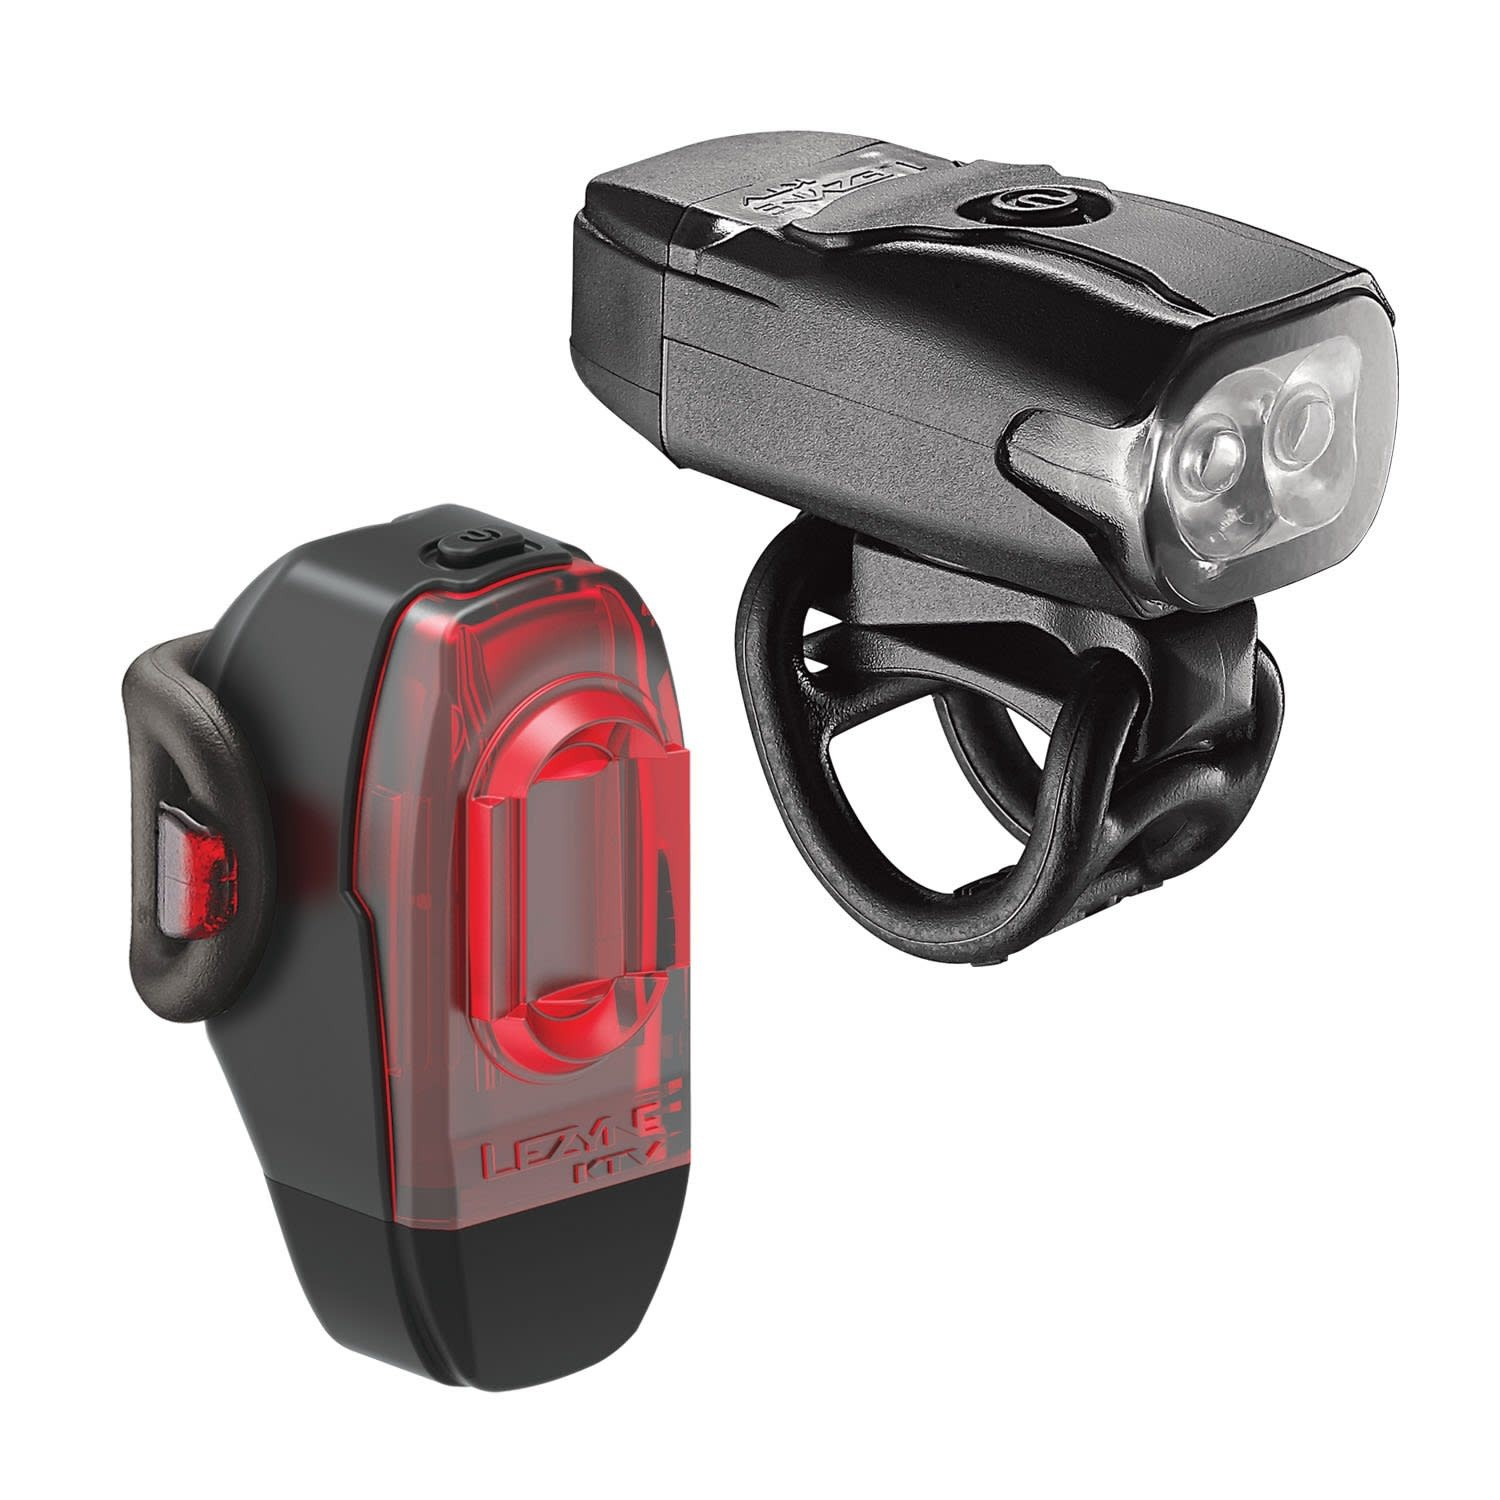 Lezyne Lezyne KTV Drive Headlight & Taillight Set Black 2020